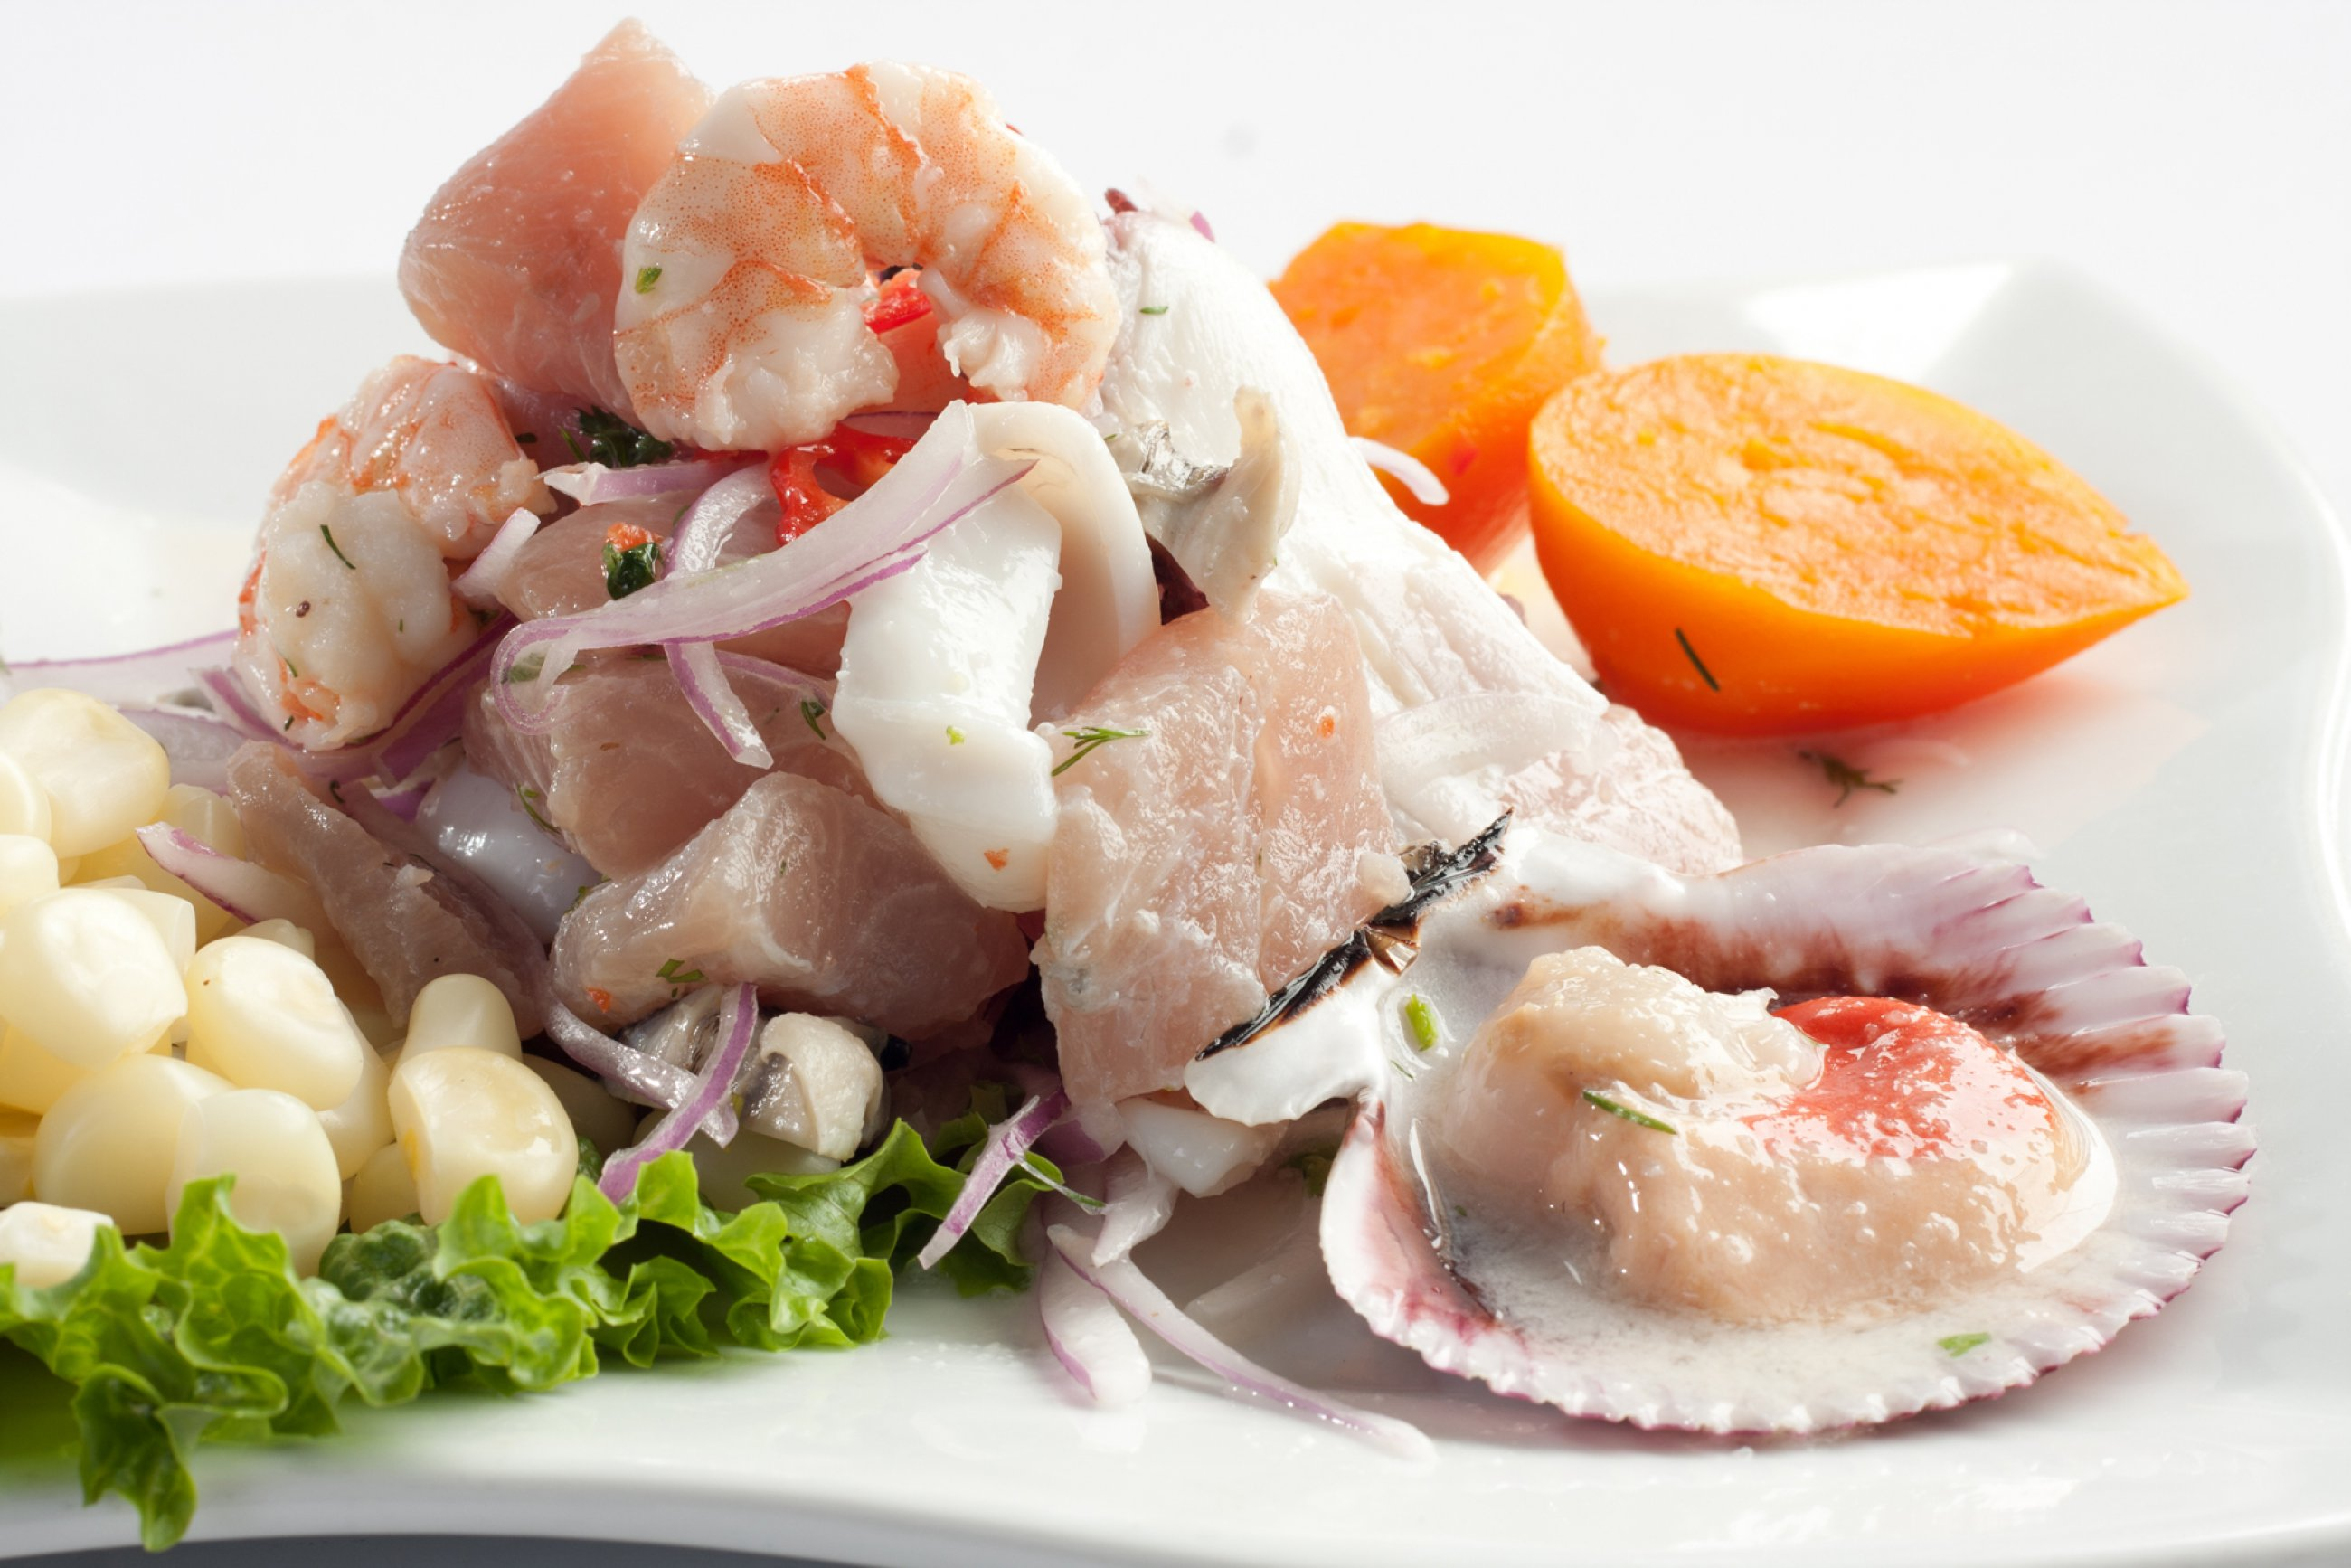 https://bubo.sk/uploads/galleries/7314/peru-ceviche.jpg